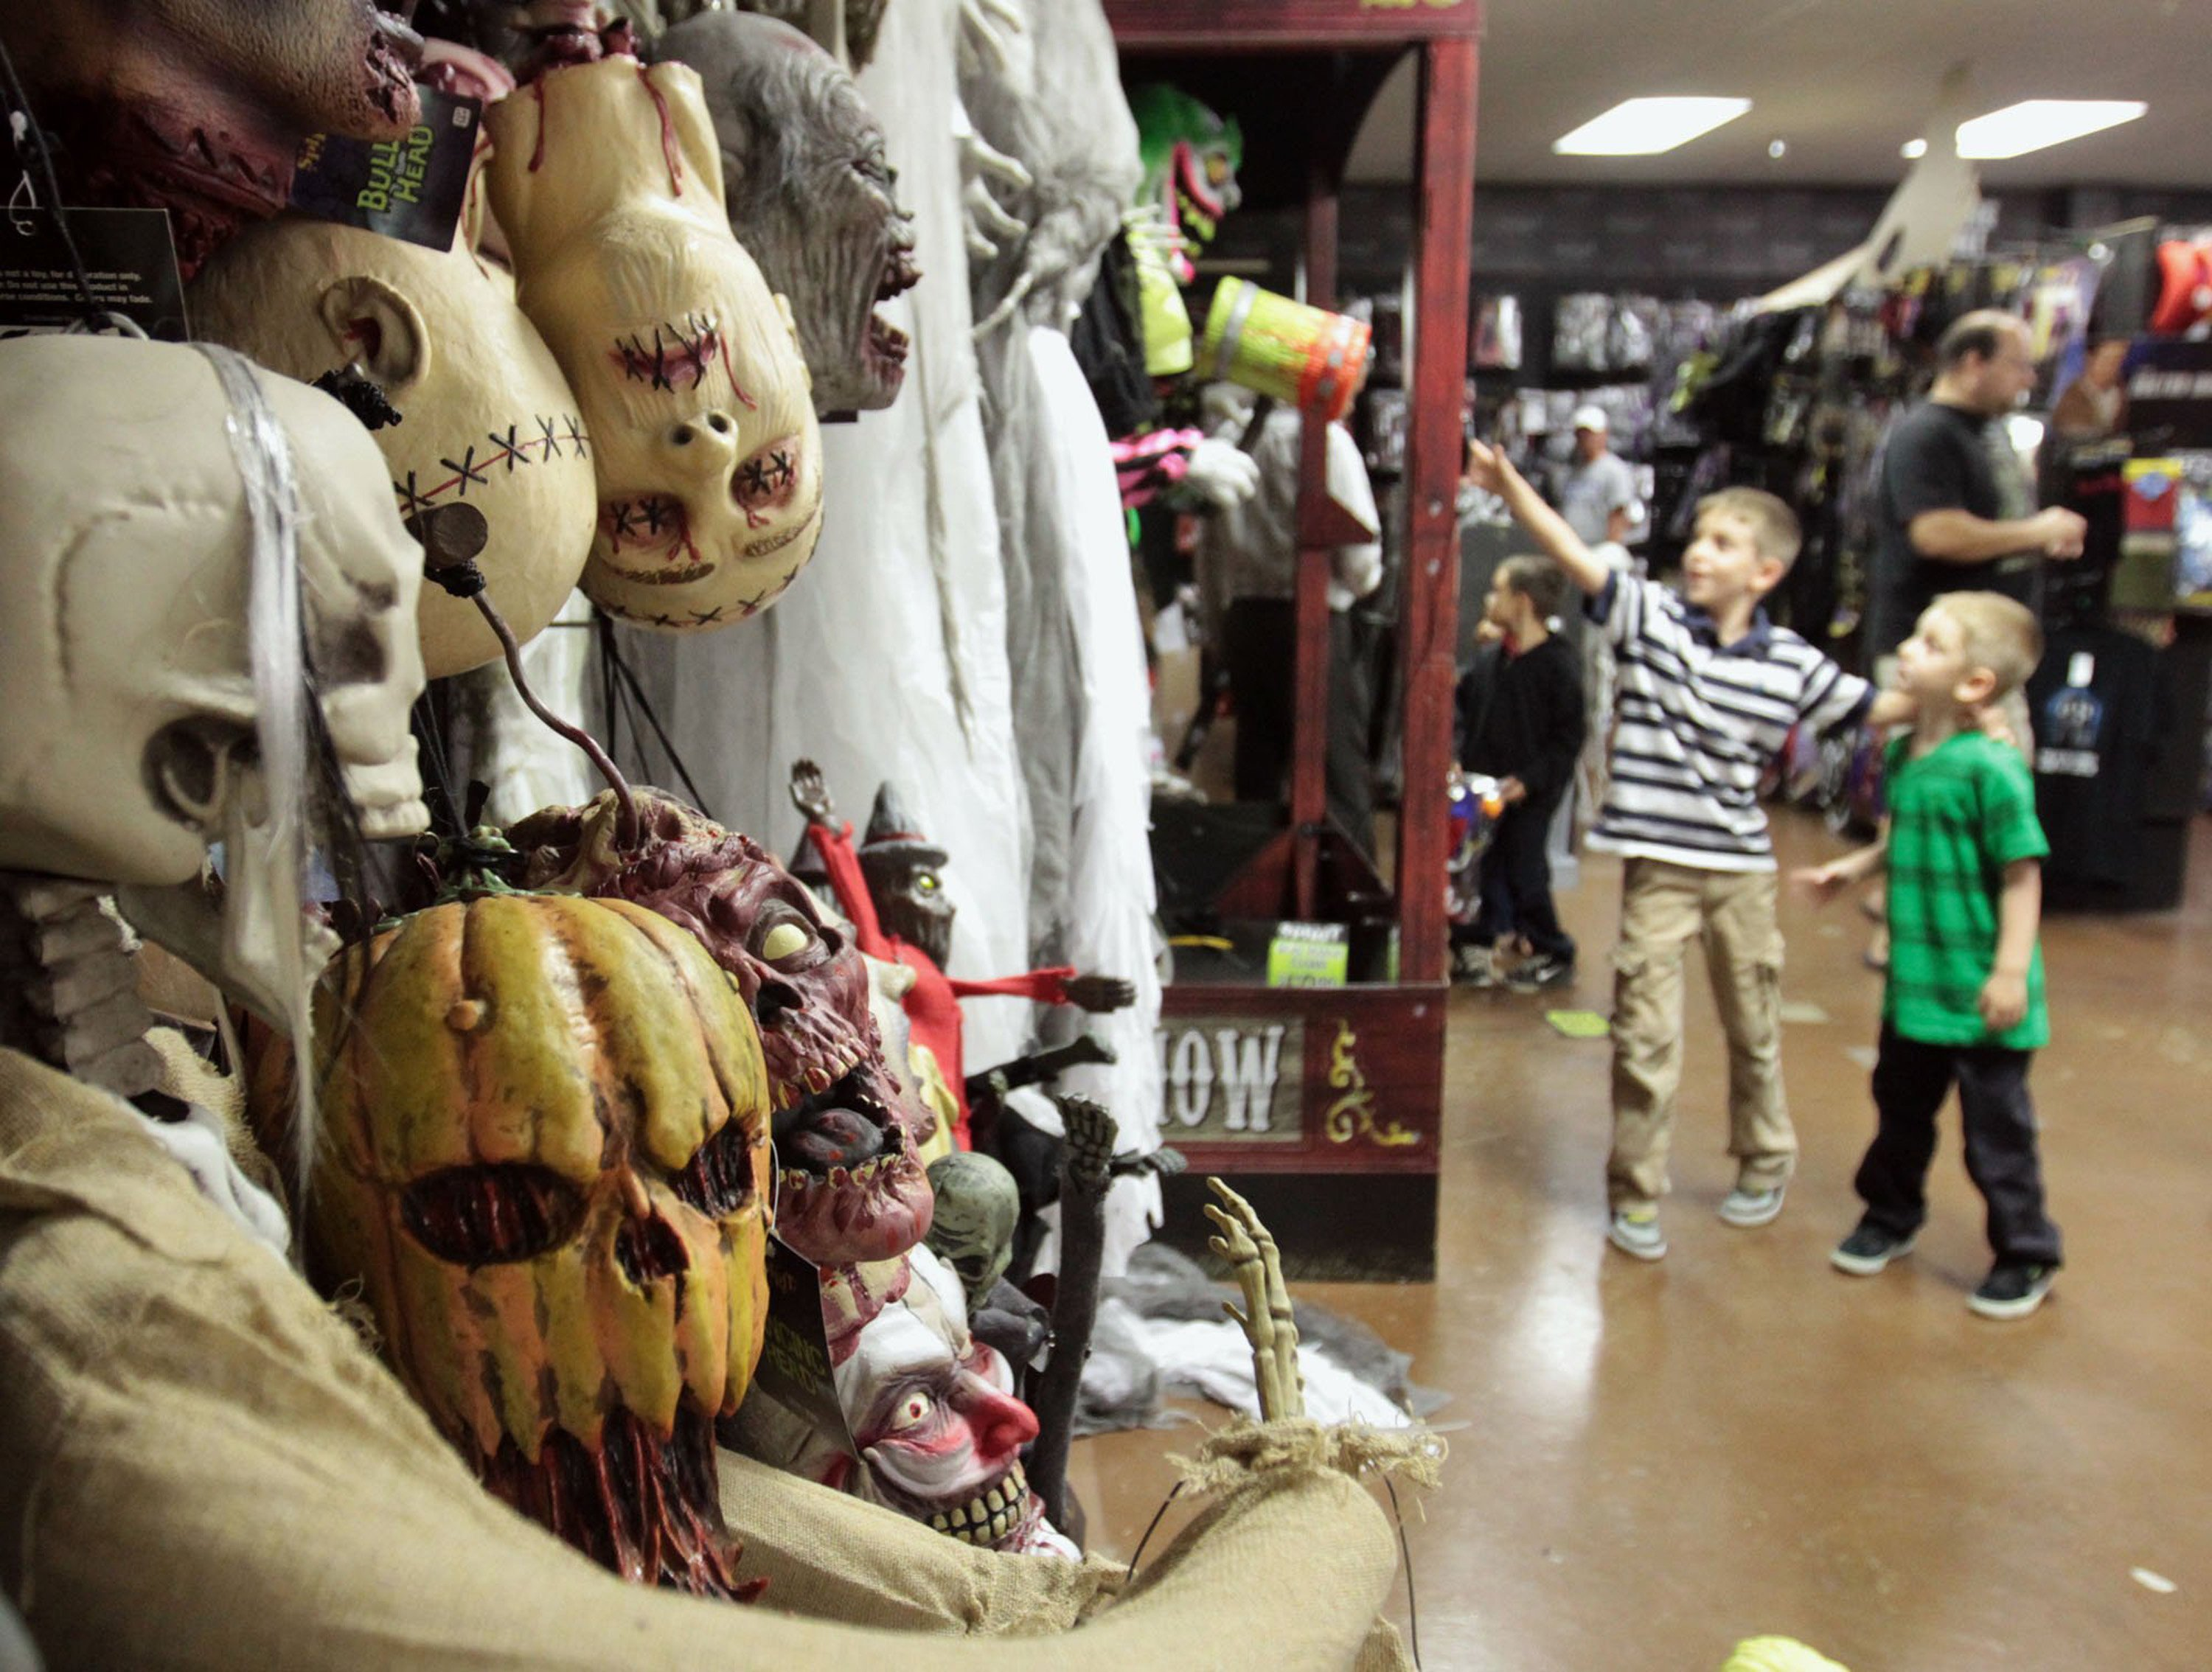 Local halloween store ready for season | The Collegian